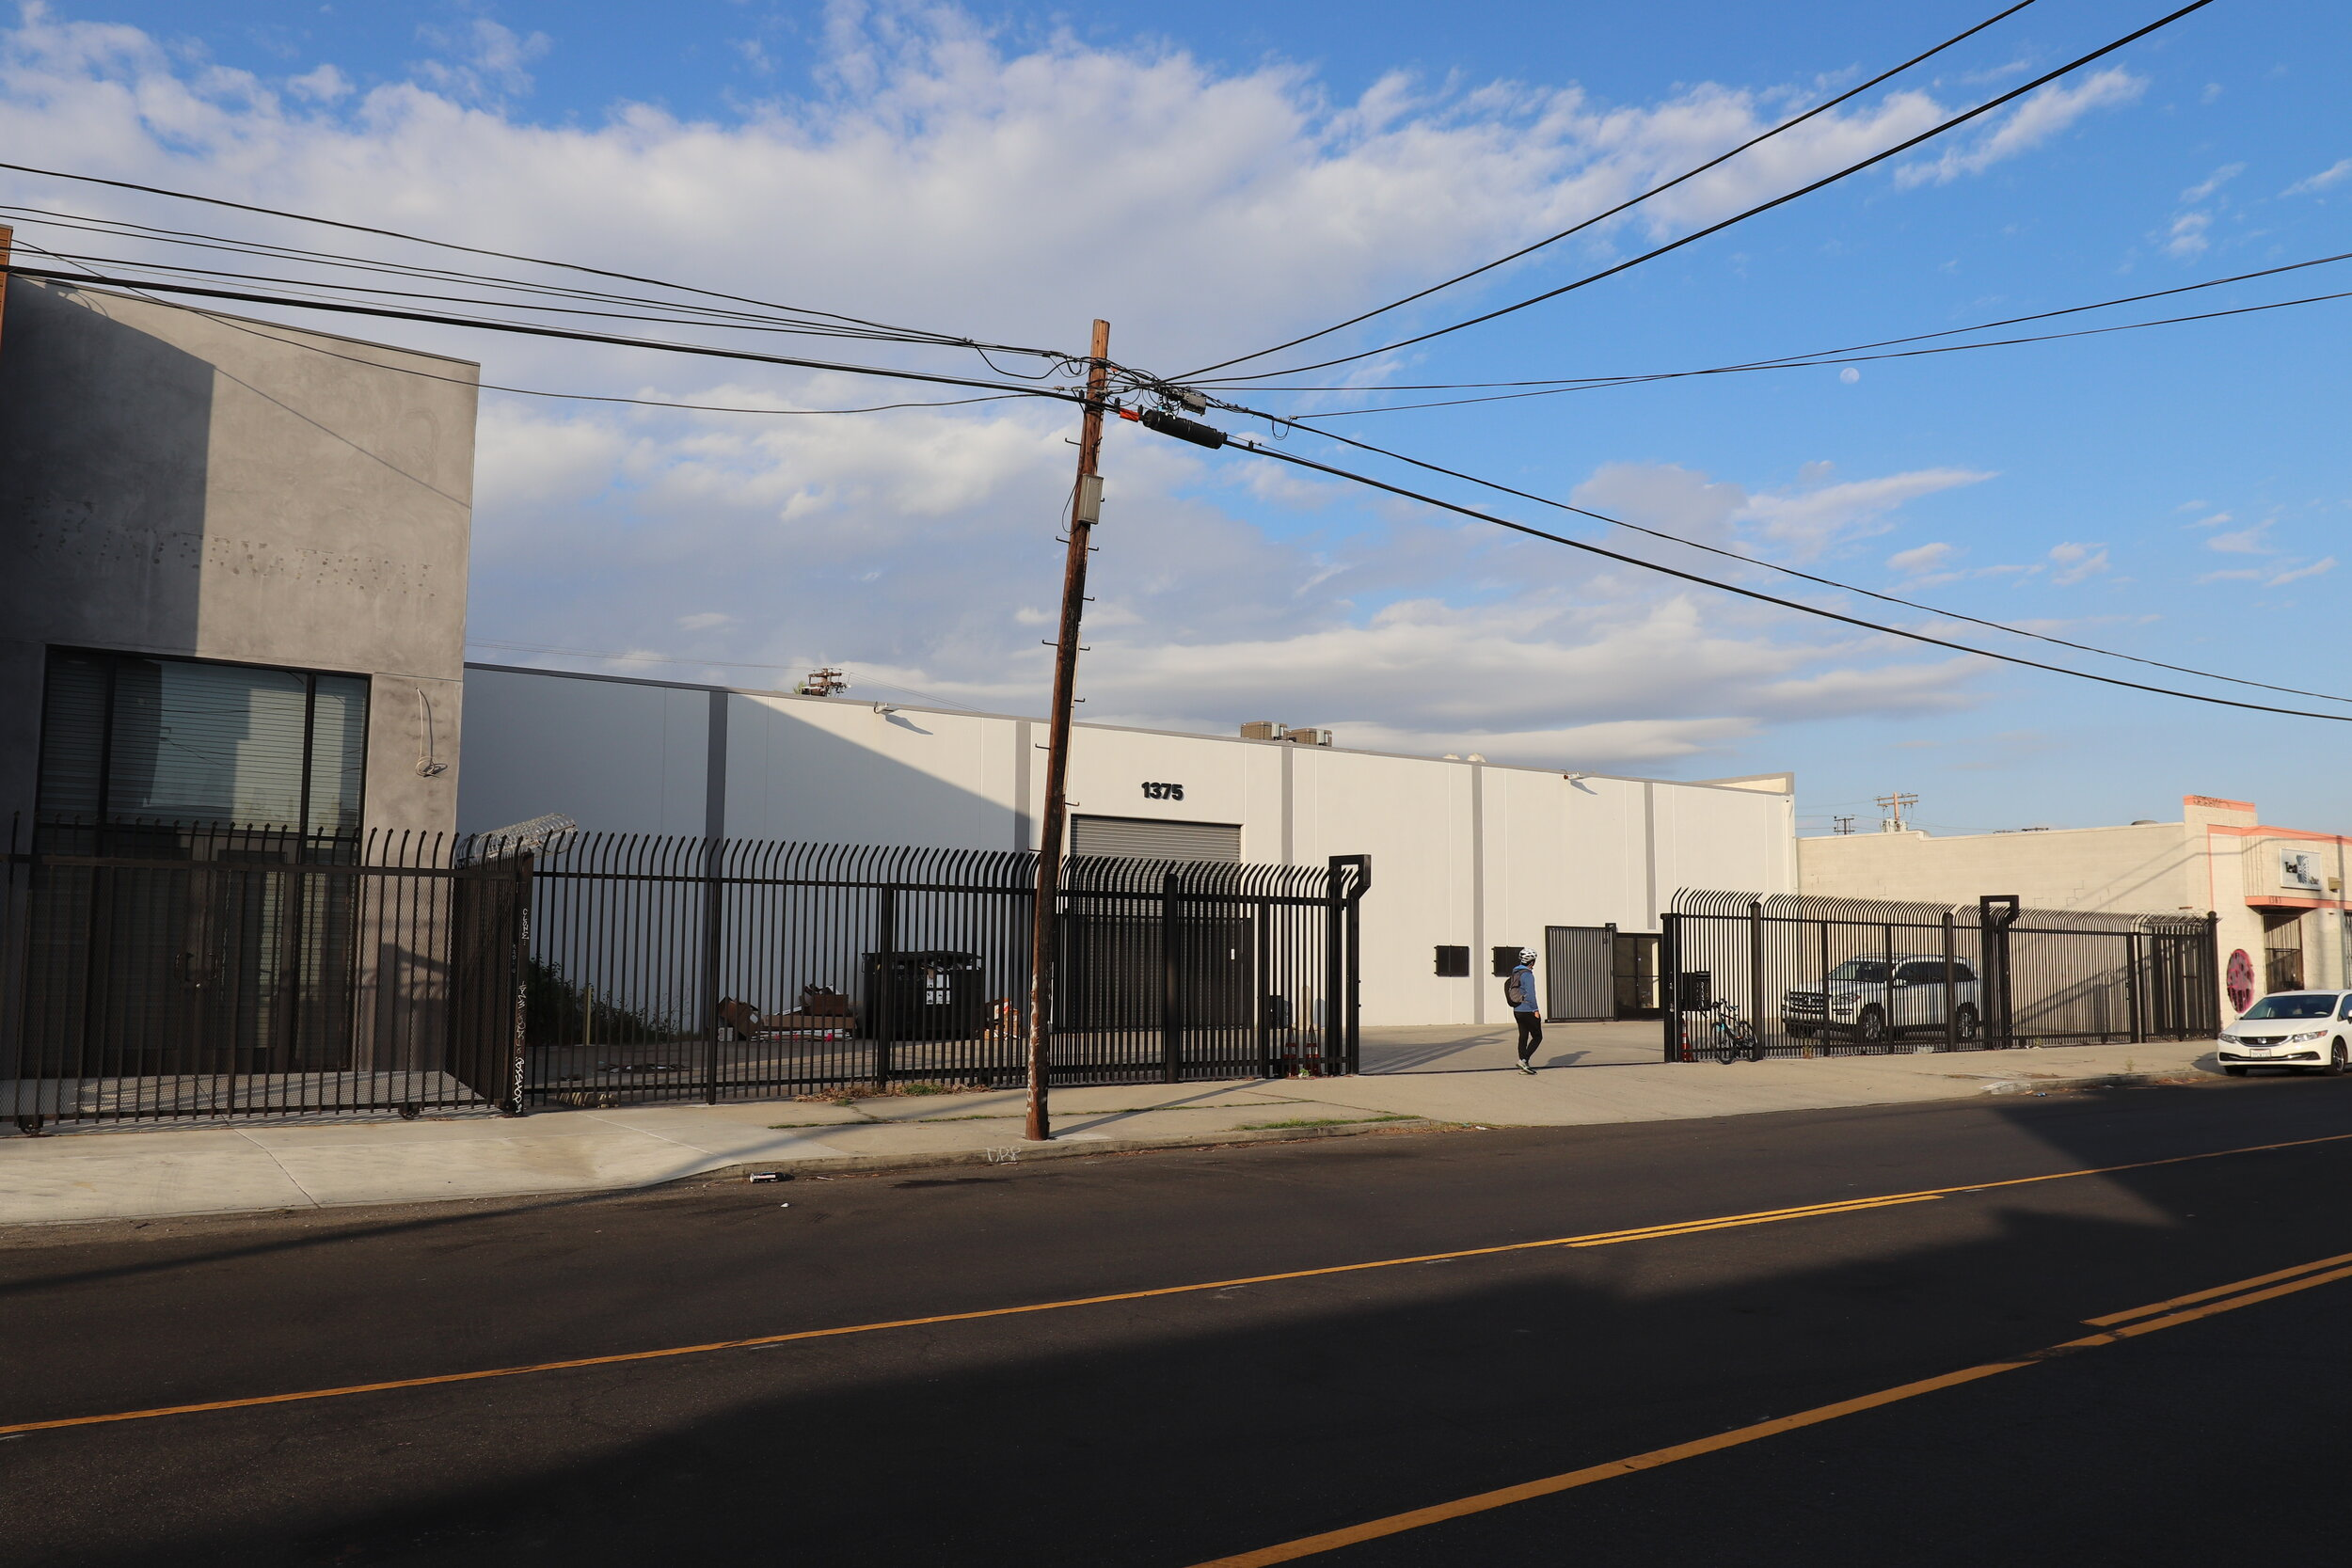 1375 east 15th street, los angeles - - Industrial Building- GBA 12,000 SF- Land 16,800 SF- In Opportunity Zone- Bonus 1,300 SF of Office Mezzanine with Bathroom